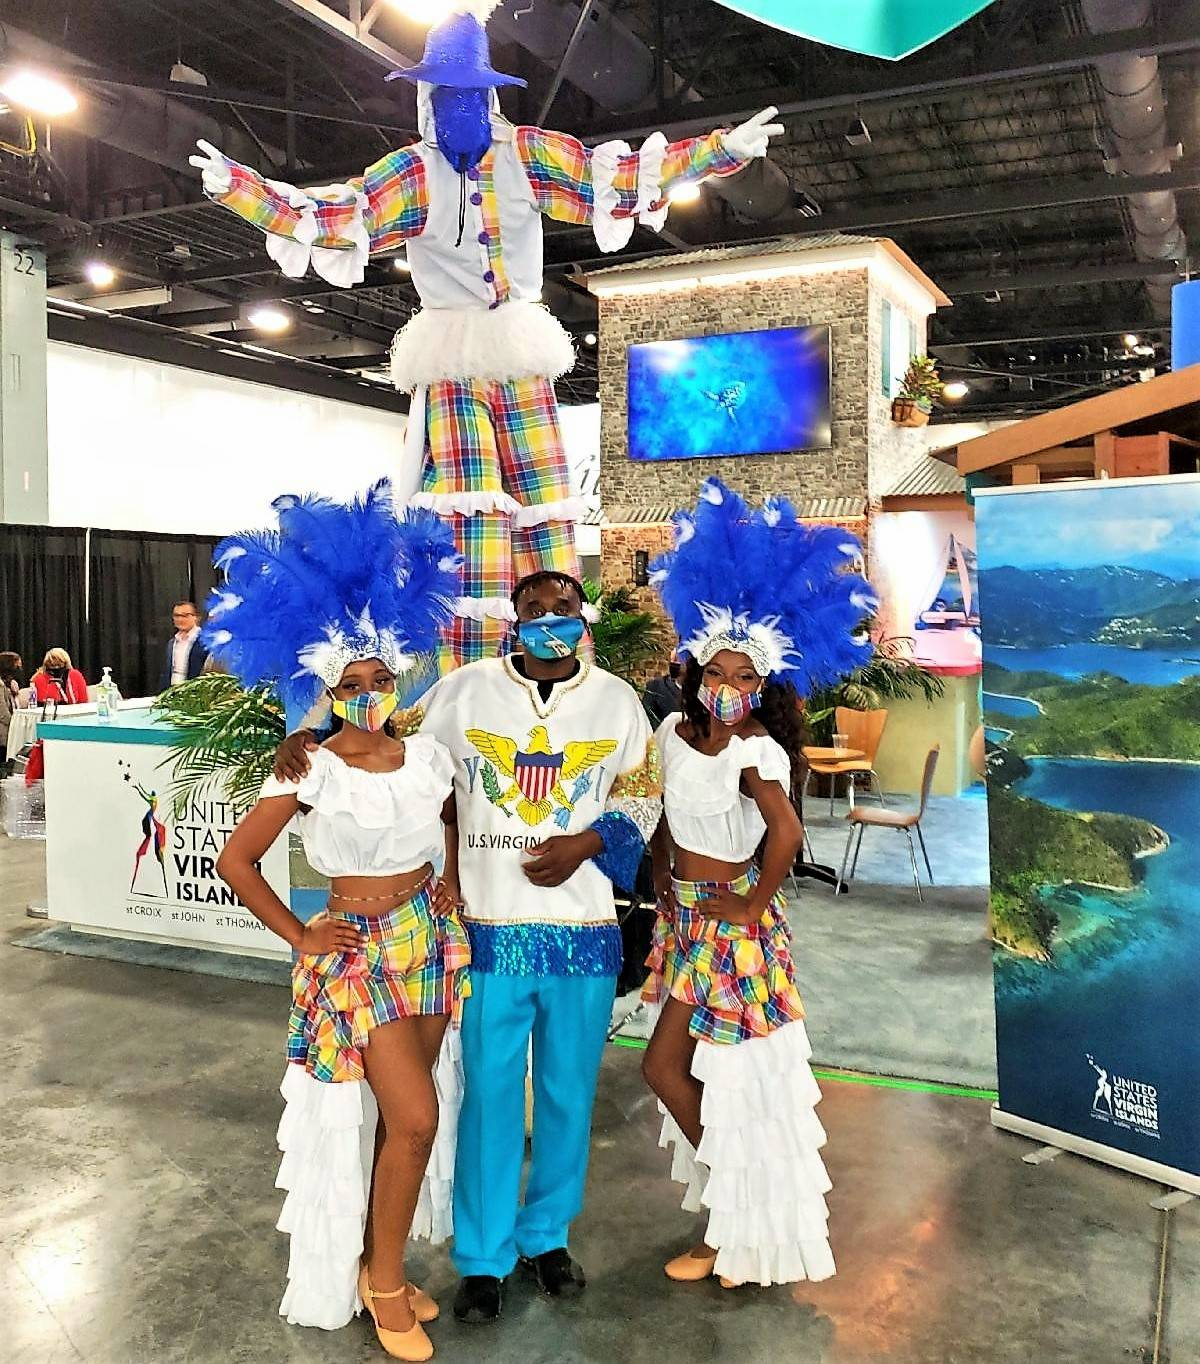 One Destination Doesn't Make an Itinerary Says US Virgin Islands Commissioner of Tourism